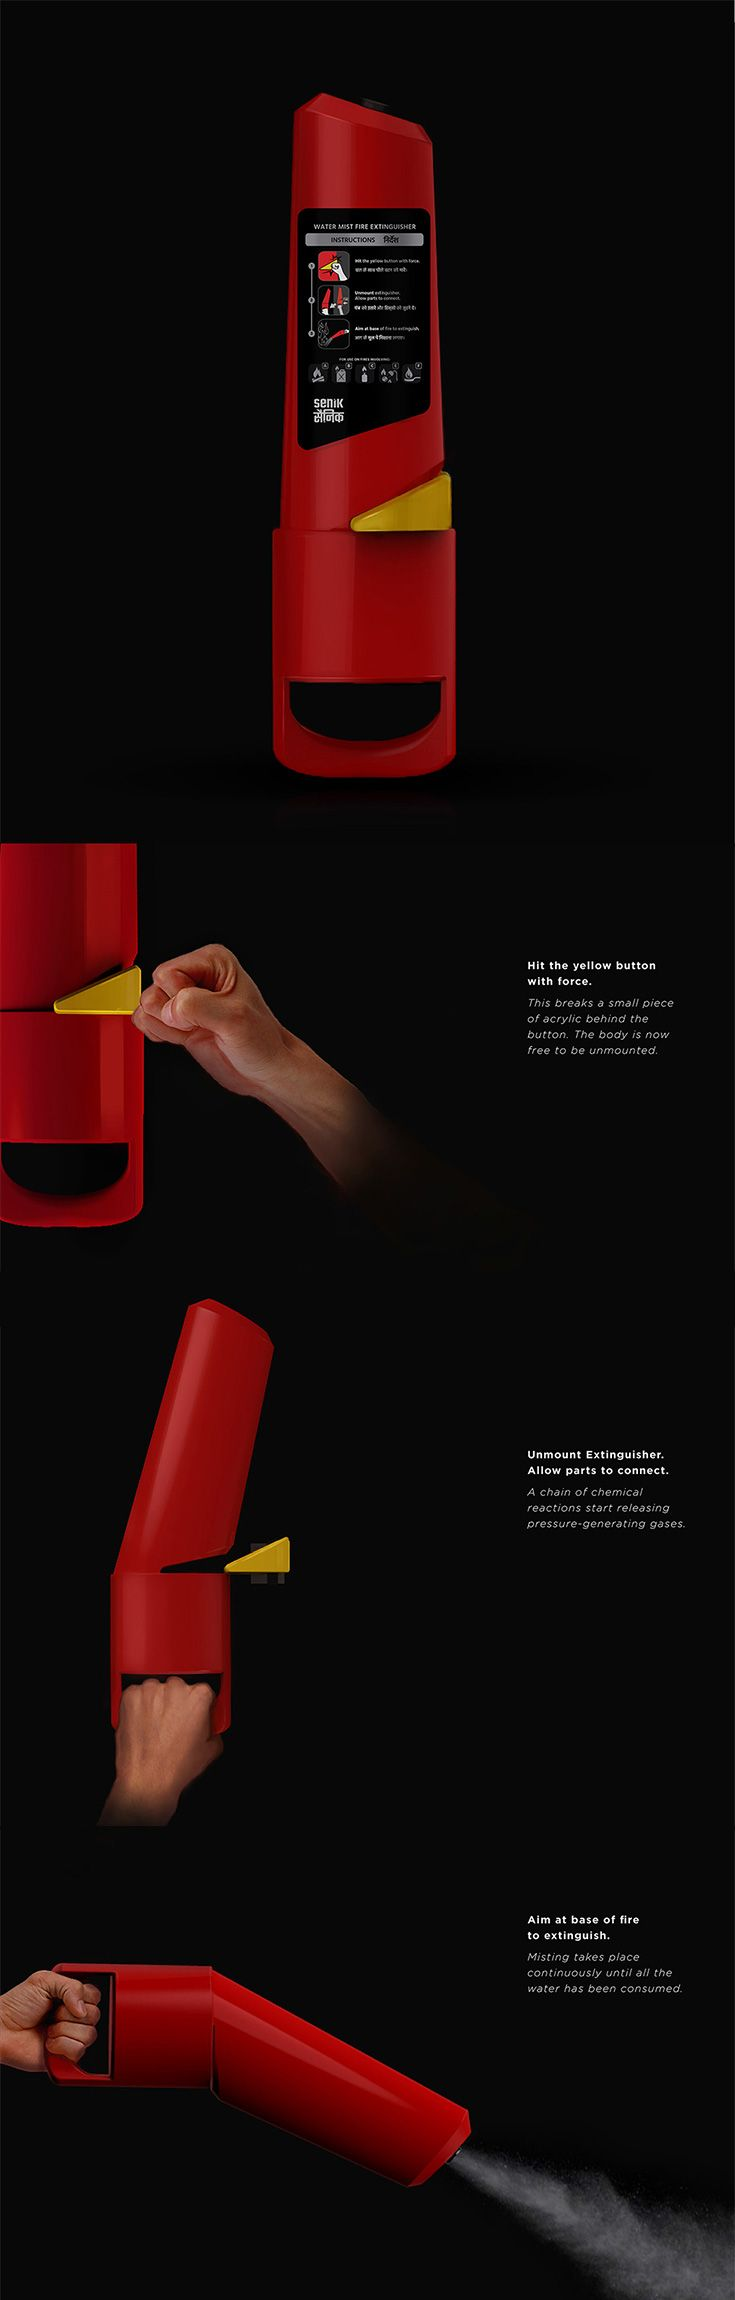 Who has time to read instructions when your house or office are going up in flames? The Senik fire extinguisher was designed with human reaction in  mind so you can do less panicking and more extinguishing.... READ MORE at Yanko Design !